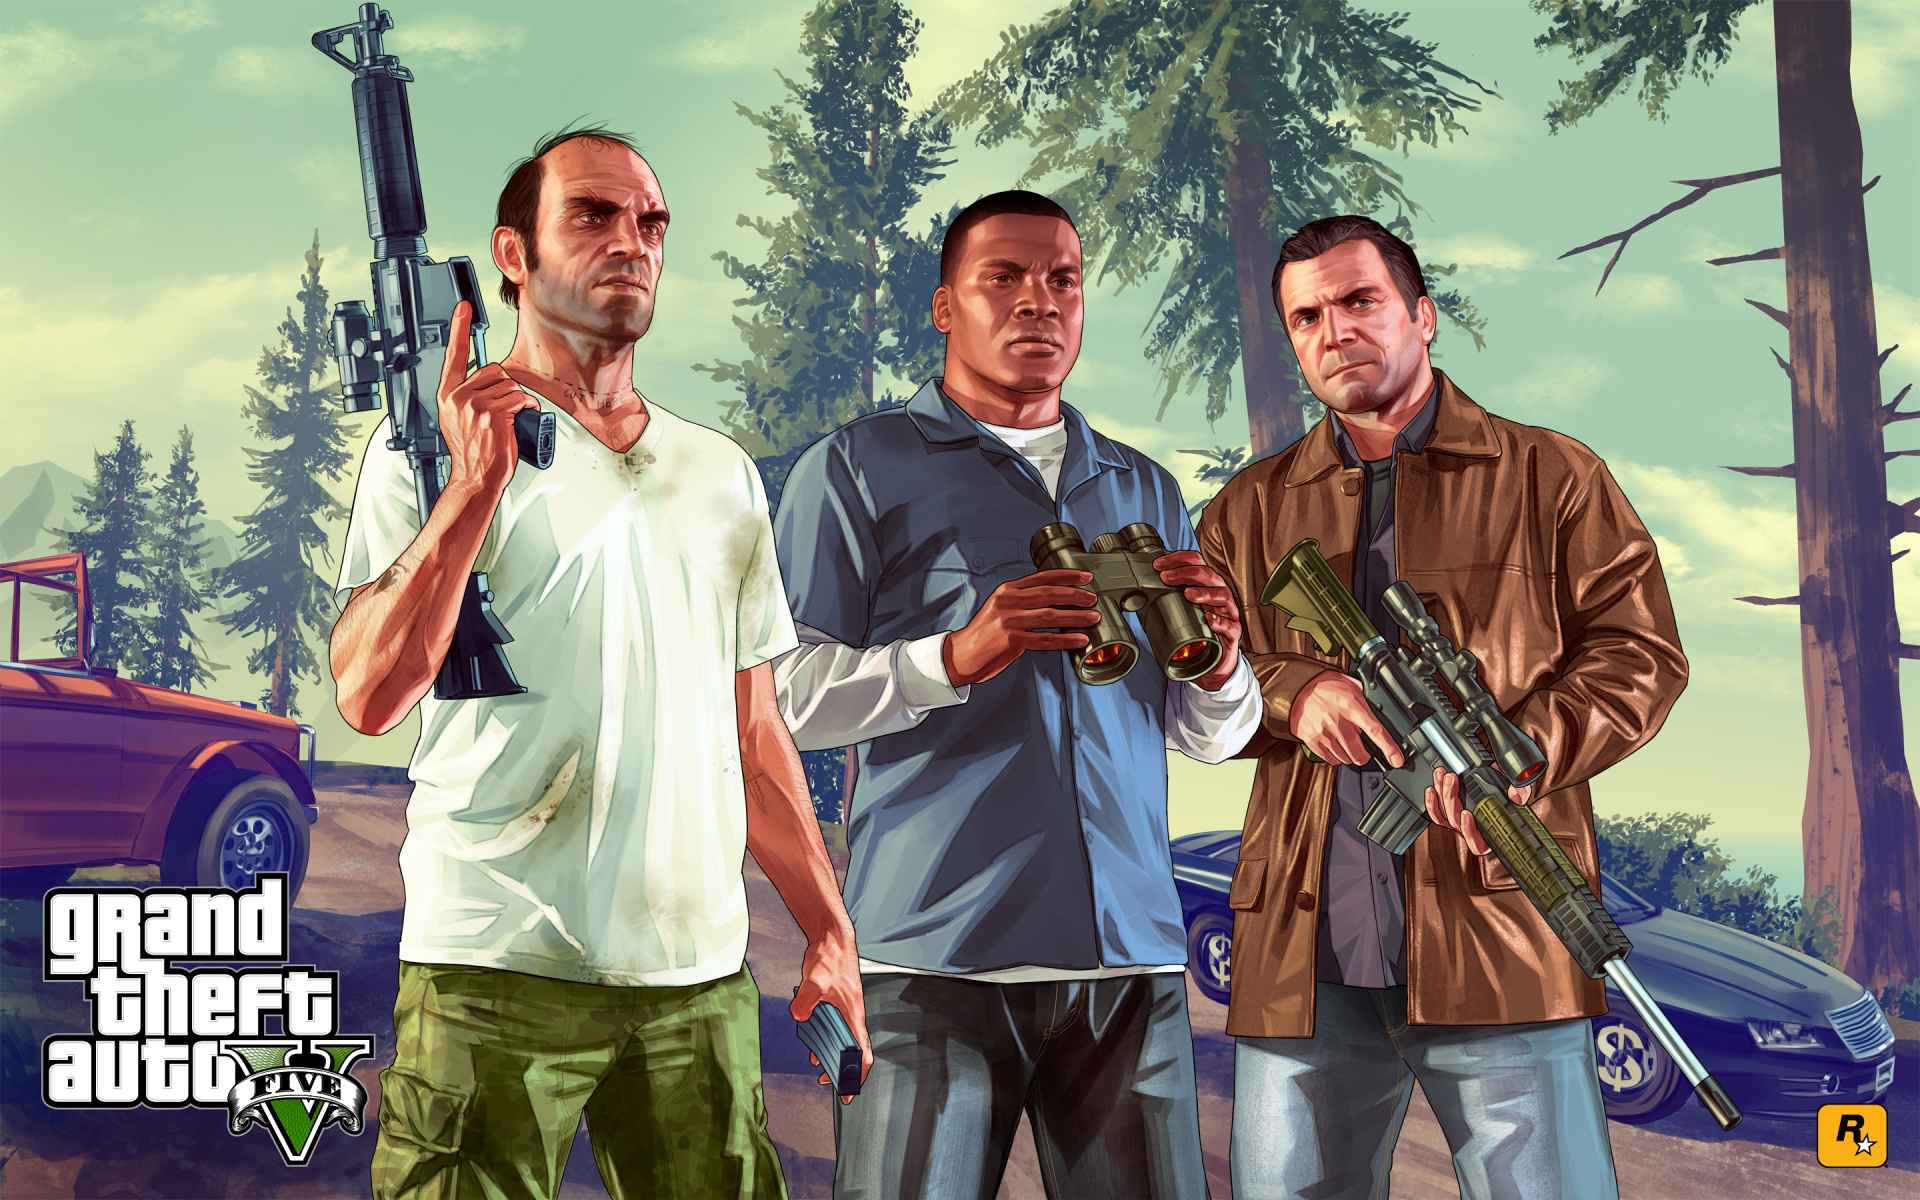 Game Grand Theft Auto V Wallpaper 061